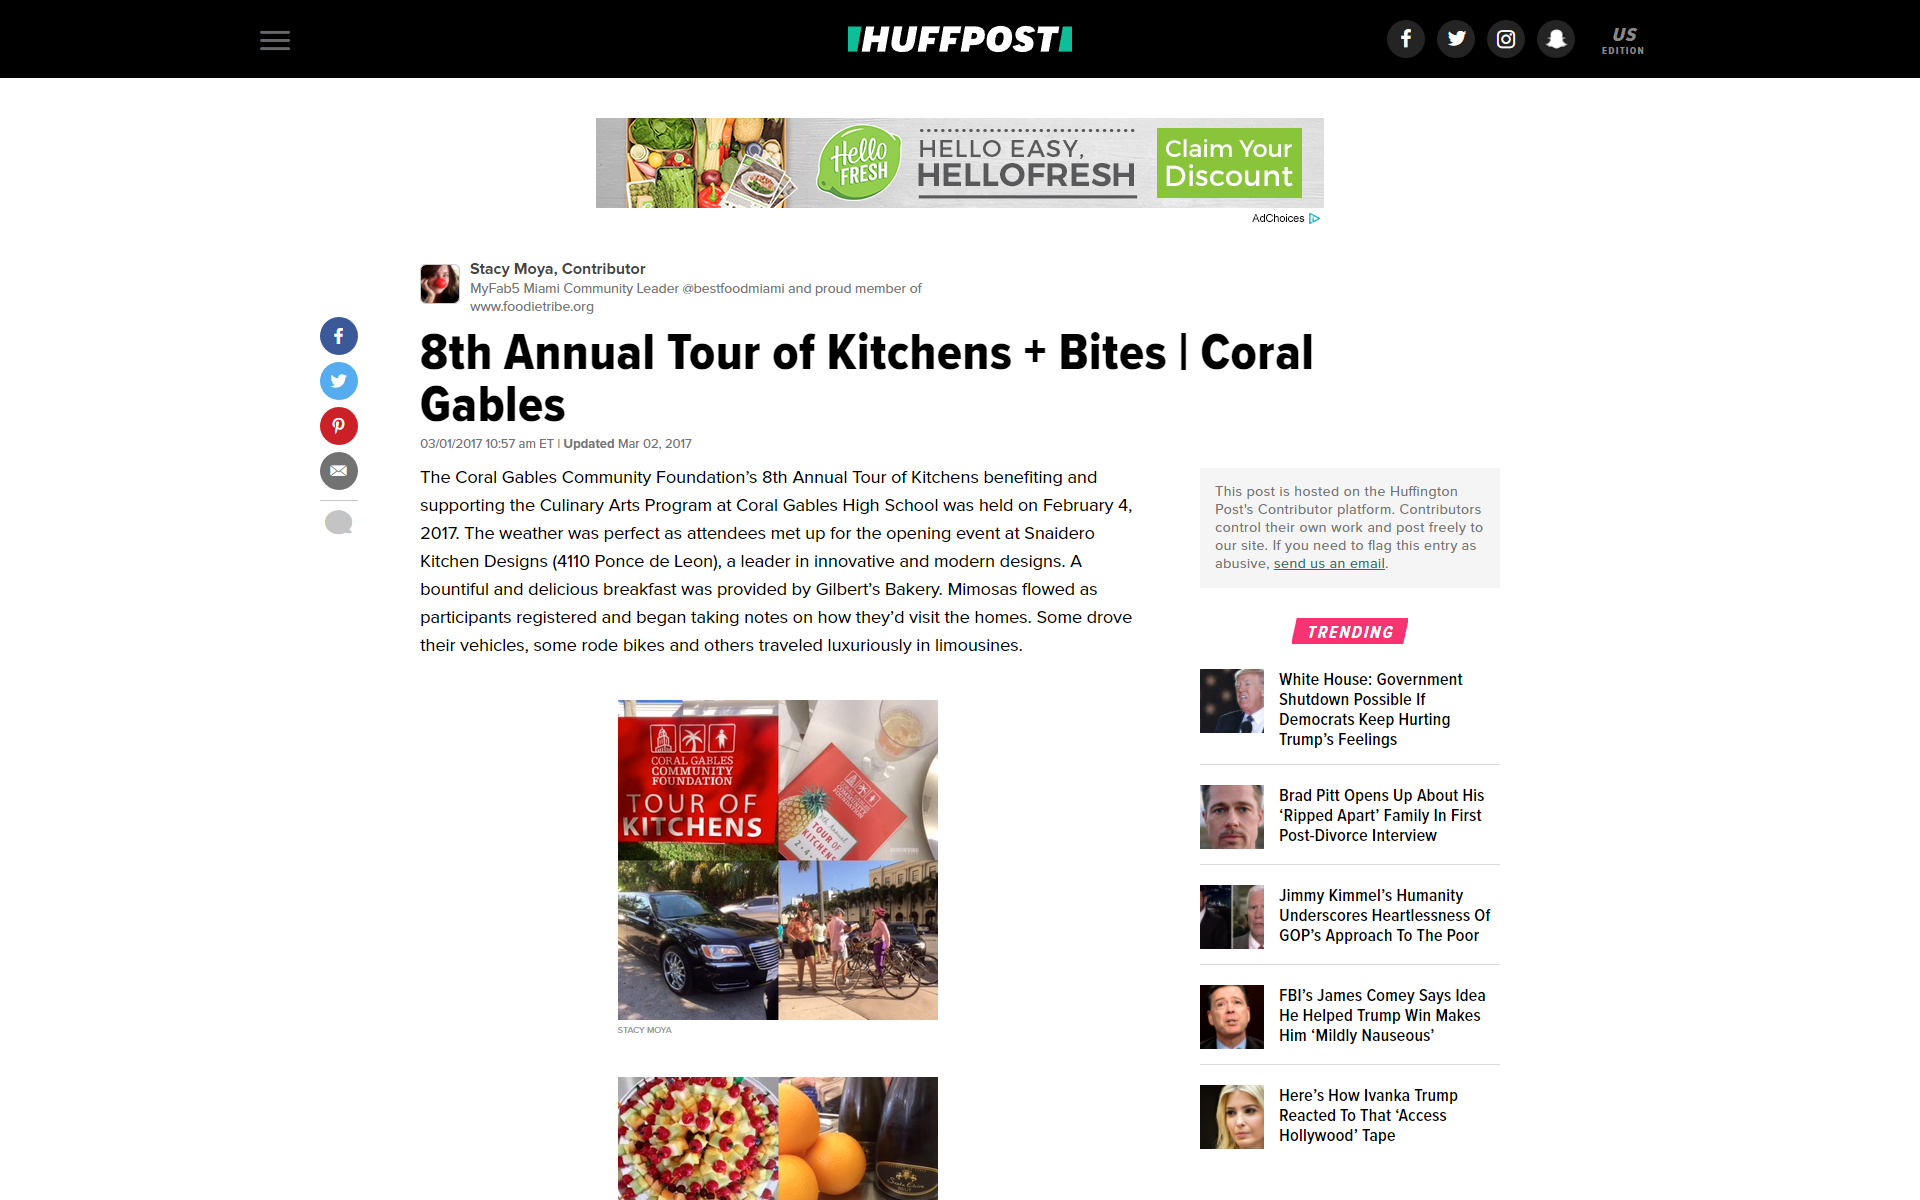 2017 Huffington Post / Huffpost | 8th Annual Tour of Kitchens event + Bites | Coral Gables  | Click on pin to read article |  #SnaideroUSA